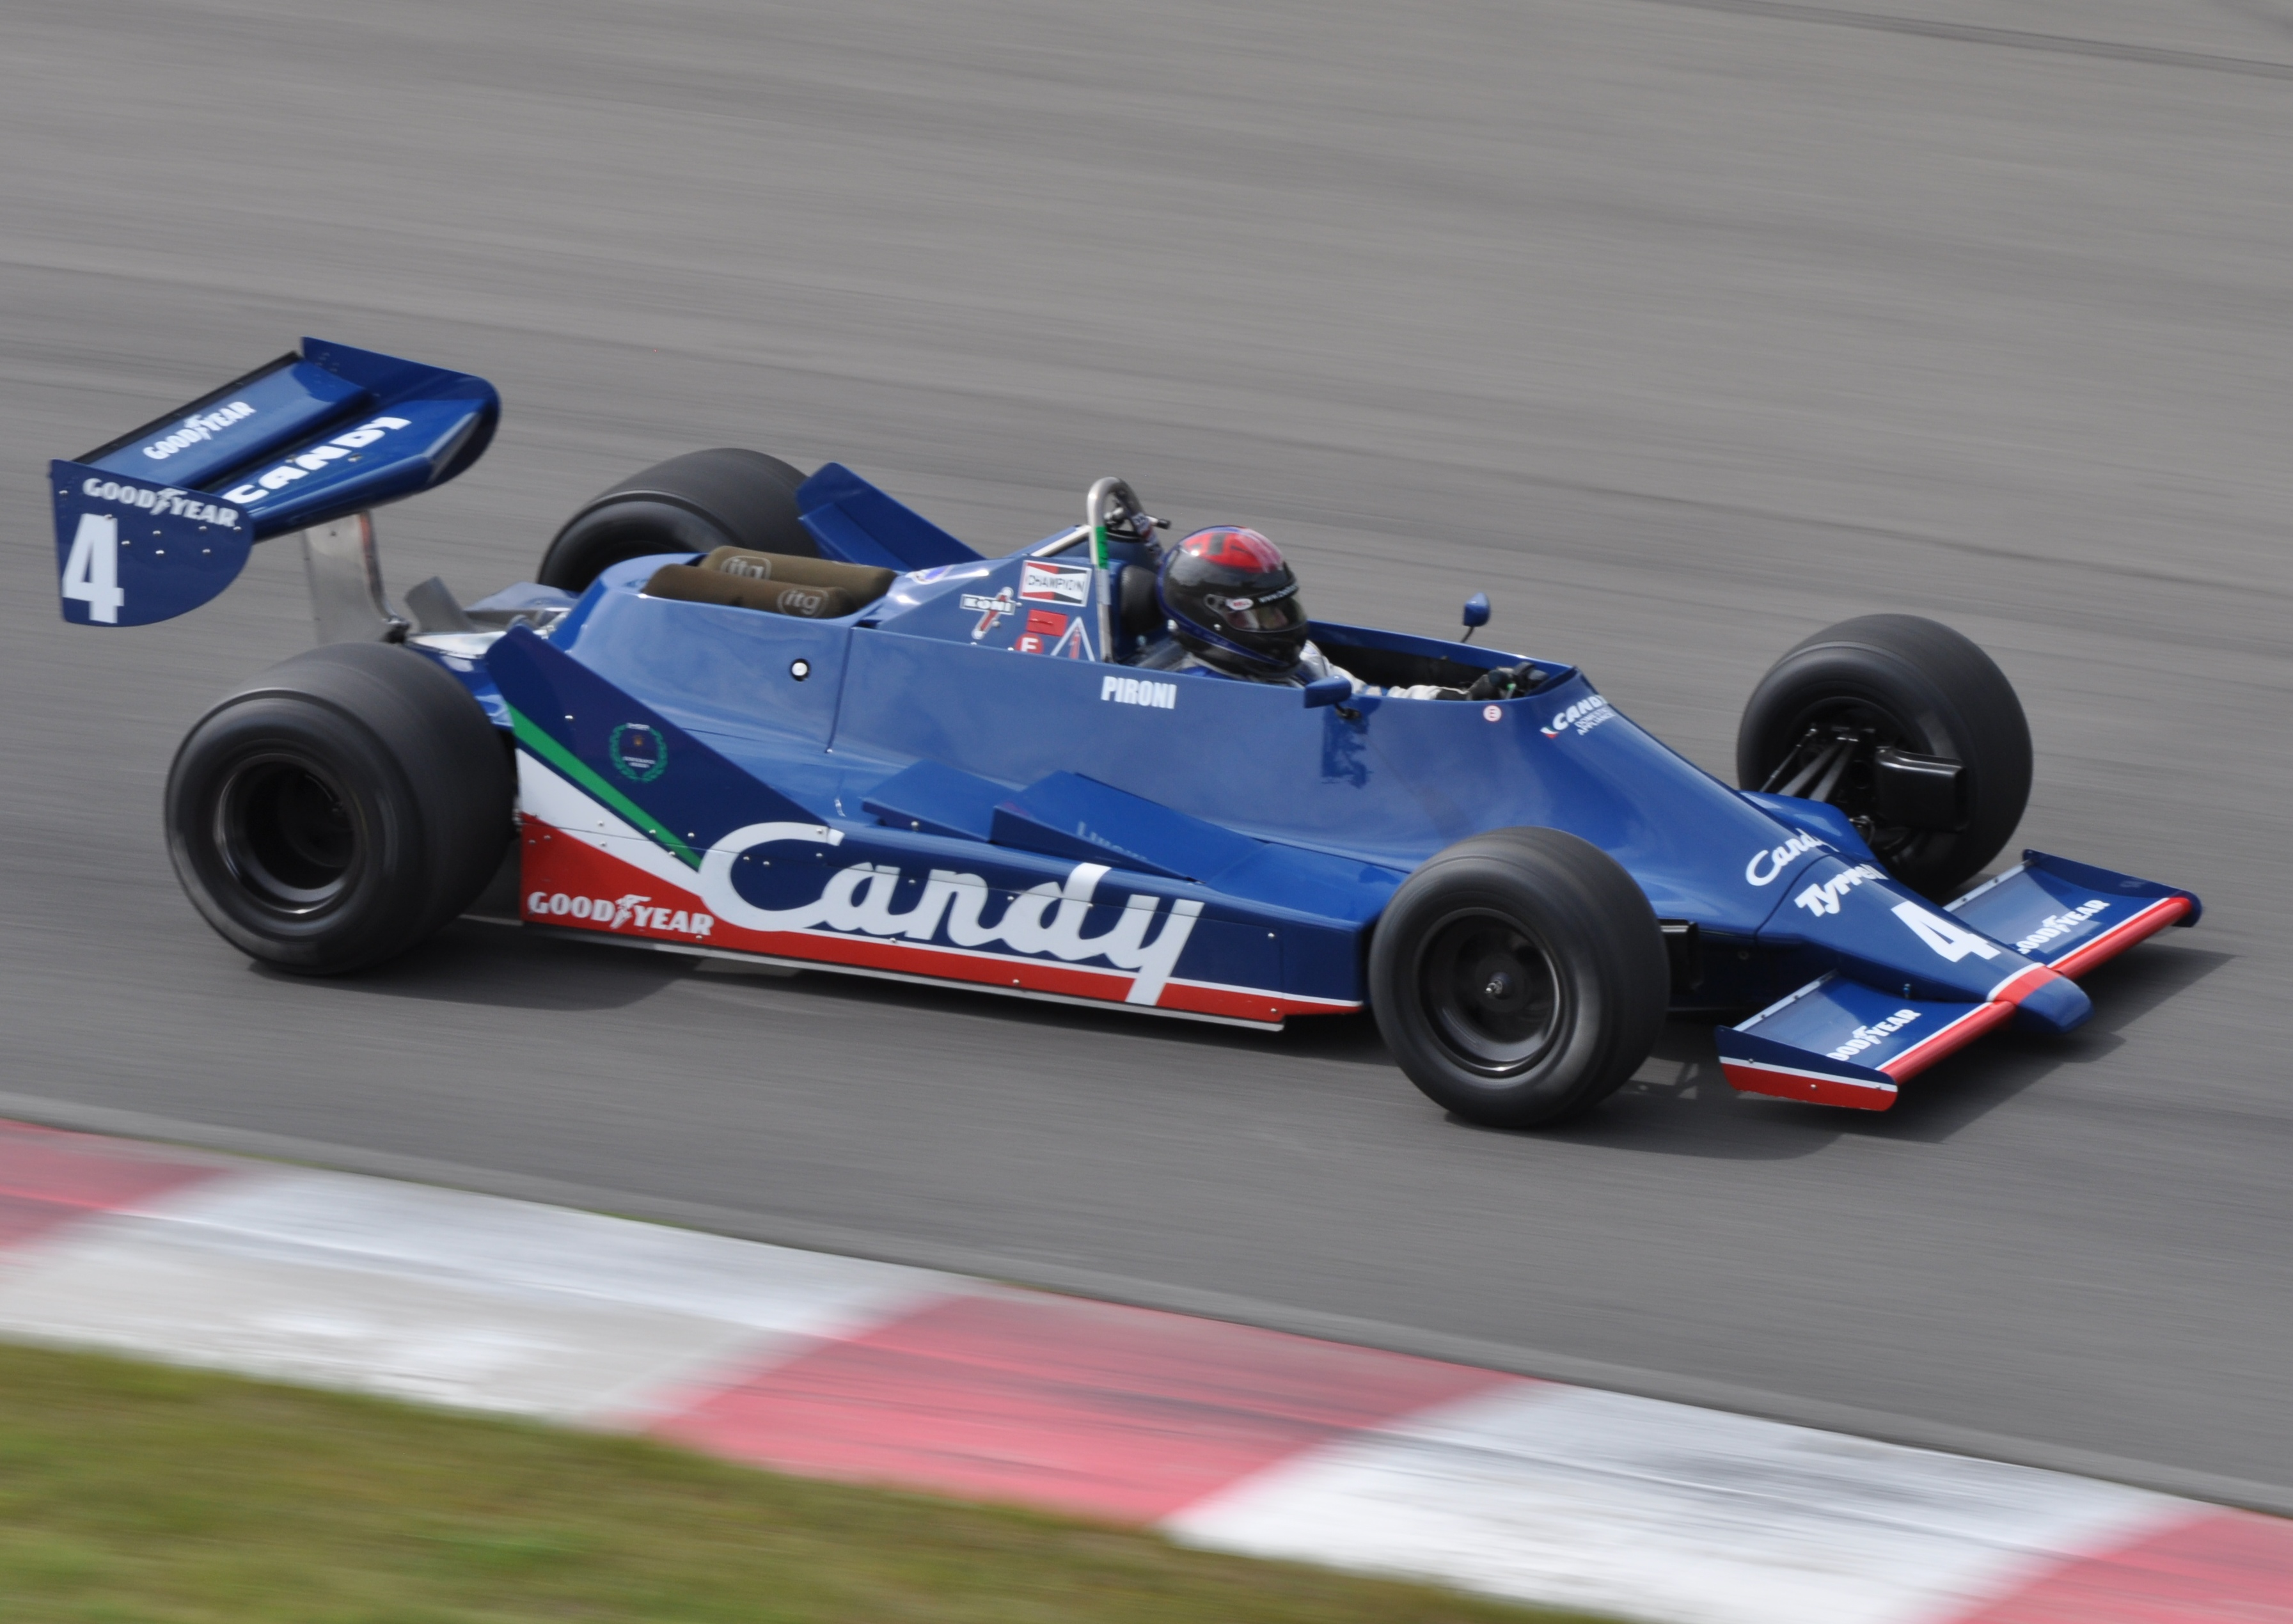 F1 Paddock Club as well File Tyrrell 009 Mont Tremblant Esses also File Circuit Silverstone also Index further F1 Formule 1 Kleurplaten. on race car circuit